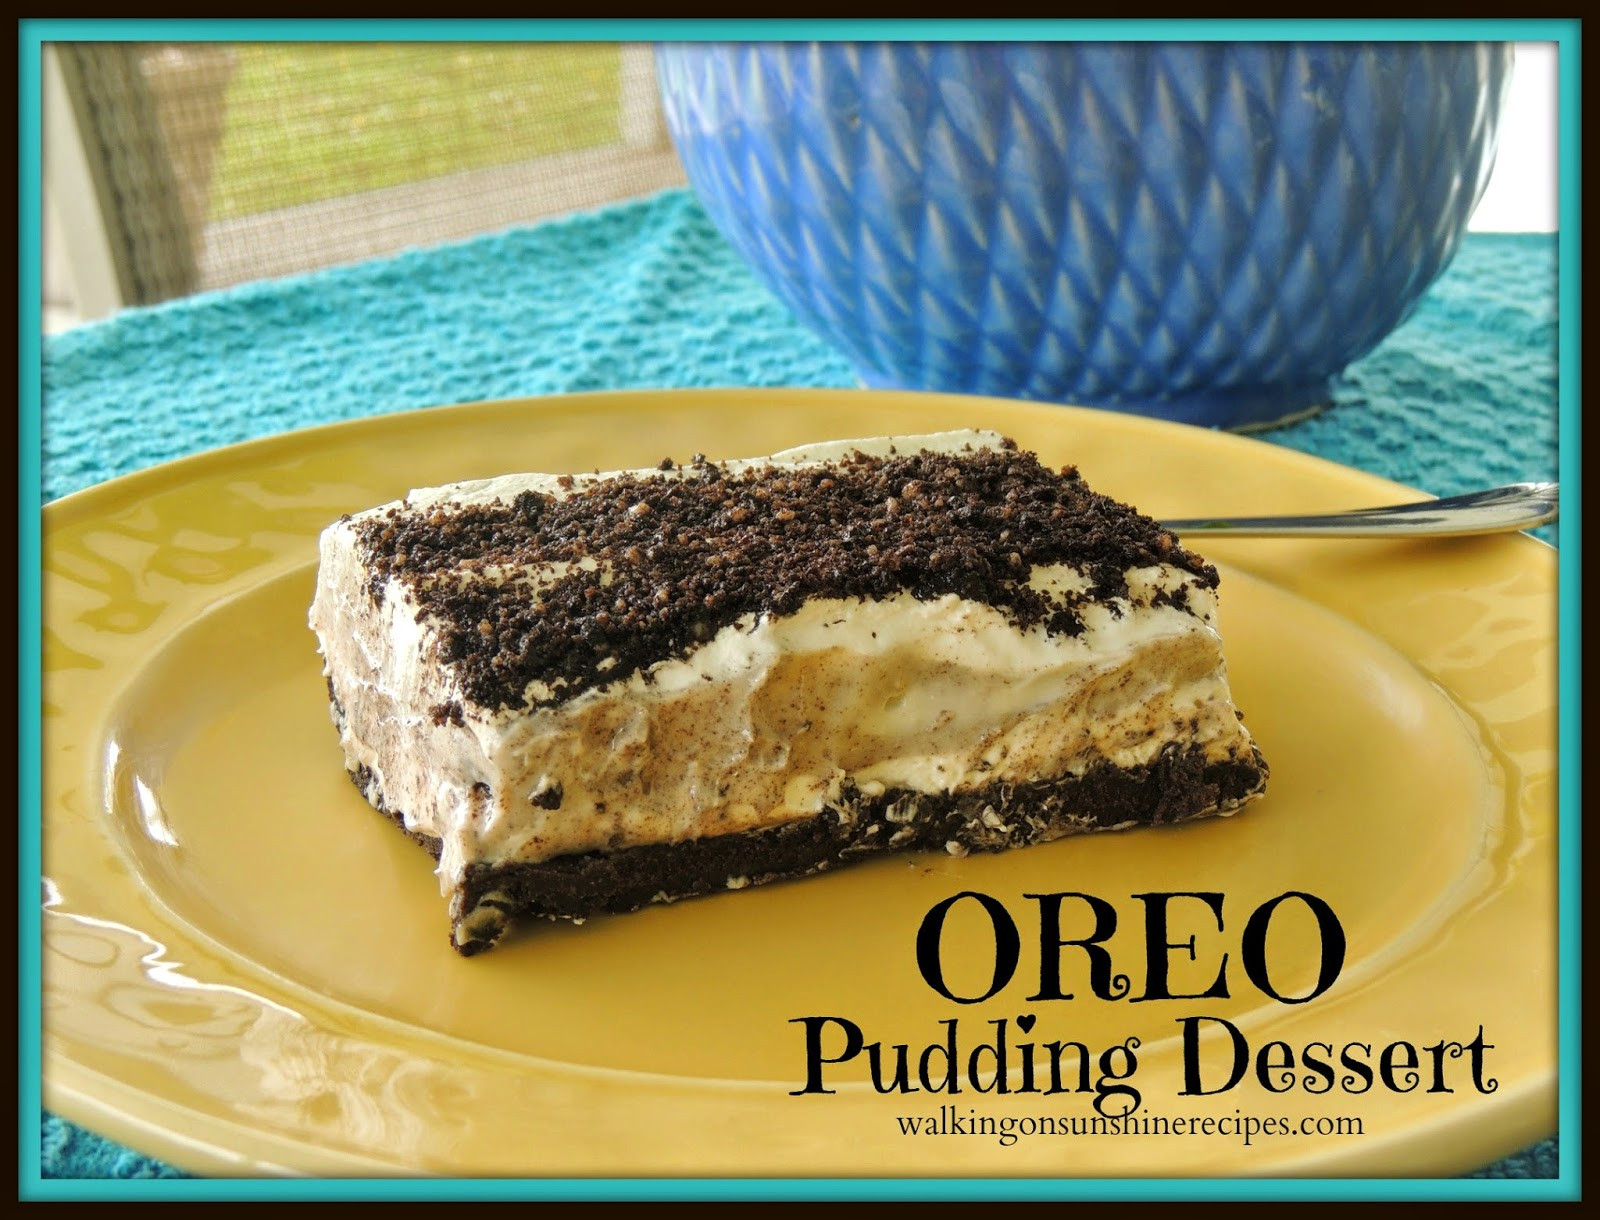 Oreo Pudding Dessert  Oreo Pudding Dessert Walking on Sunshine